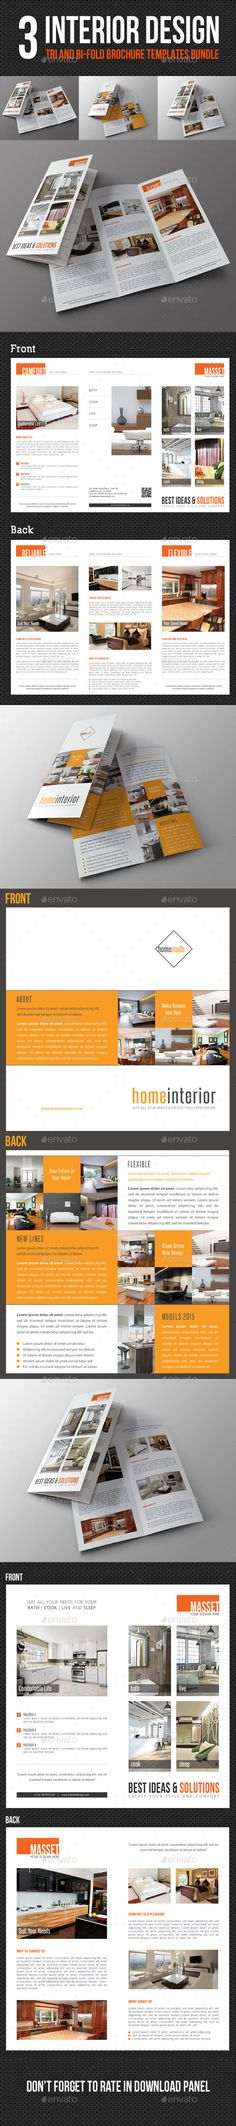 Interior Design Square 3-Fold Brochure V04 Brochures, Company - interior design brochure template